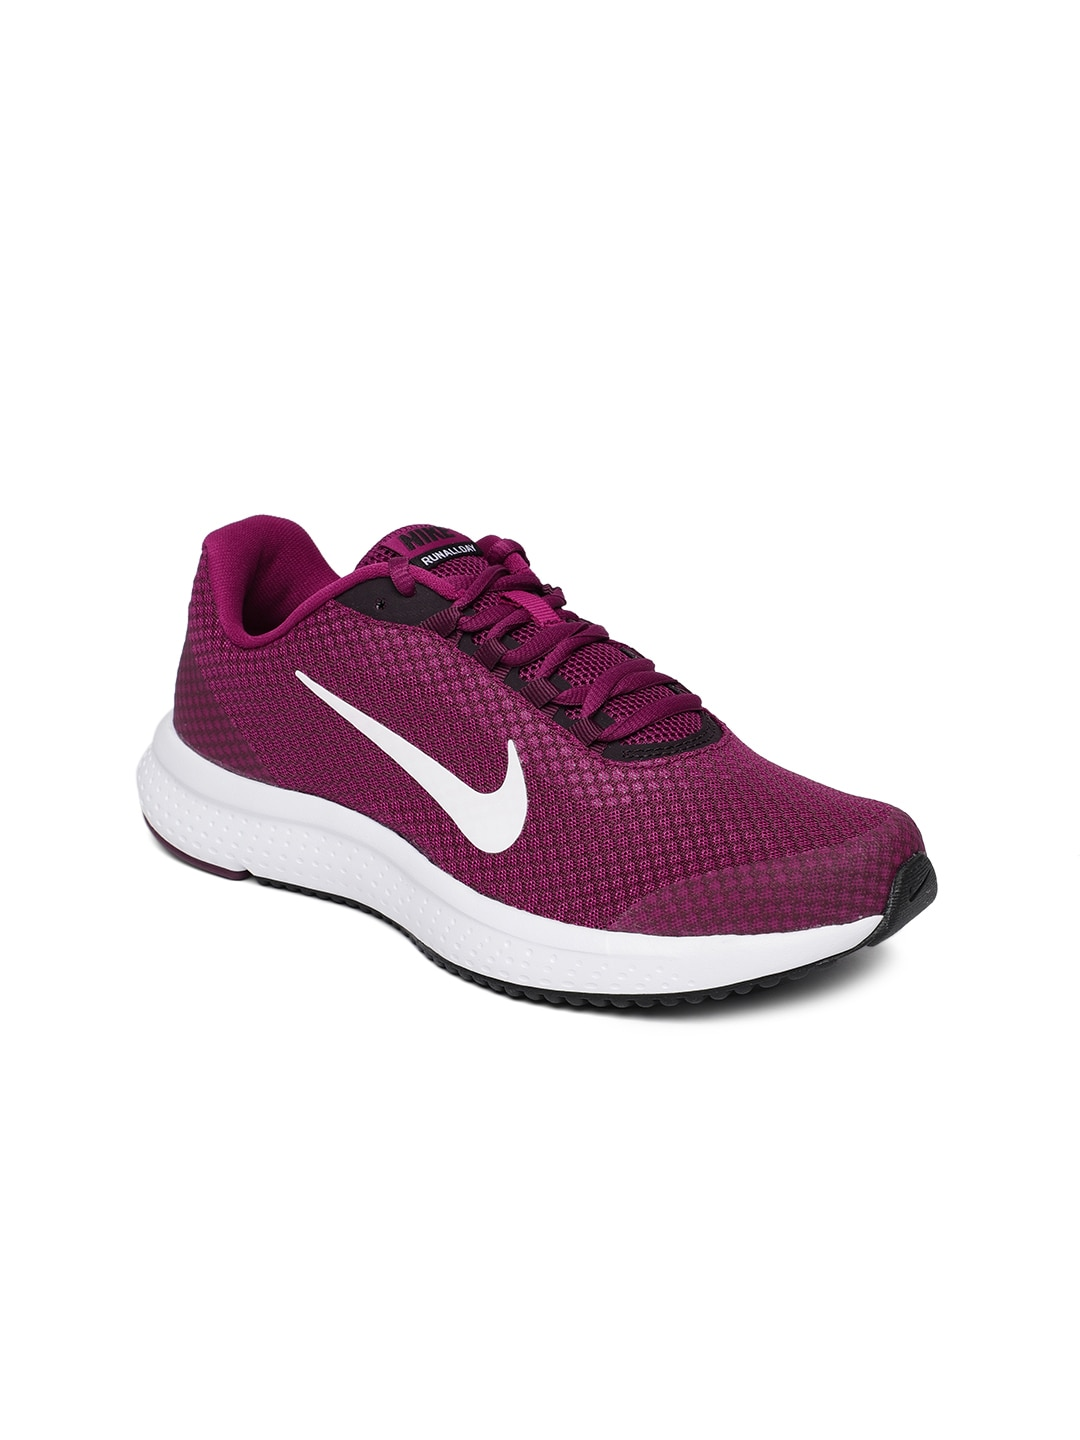 3f59156052c Nike Briefs Tights Sports Shoes - Buy Nike Briefs Tights Sports Shoes  online in India